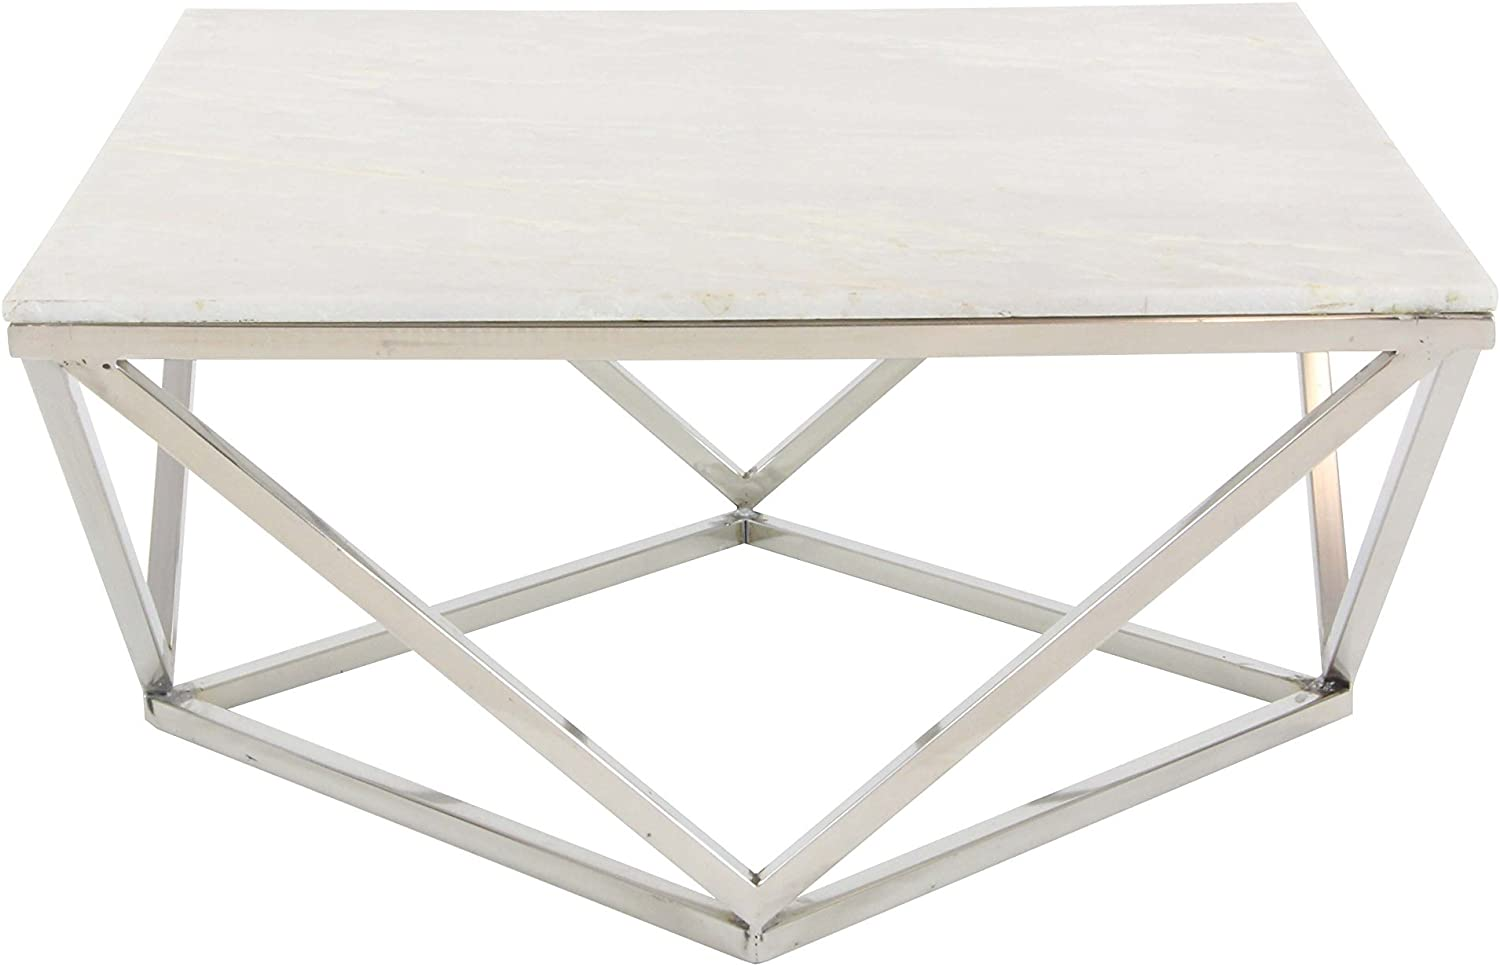 - Amazon.com: Deco 79 Square White Marble Coffee Table With Silver